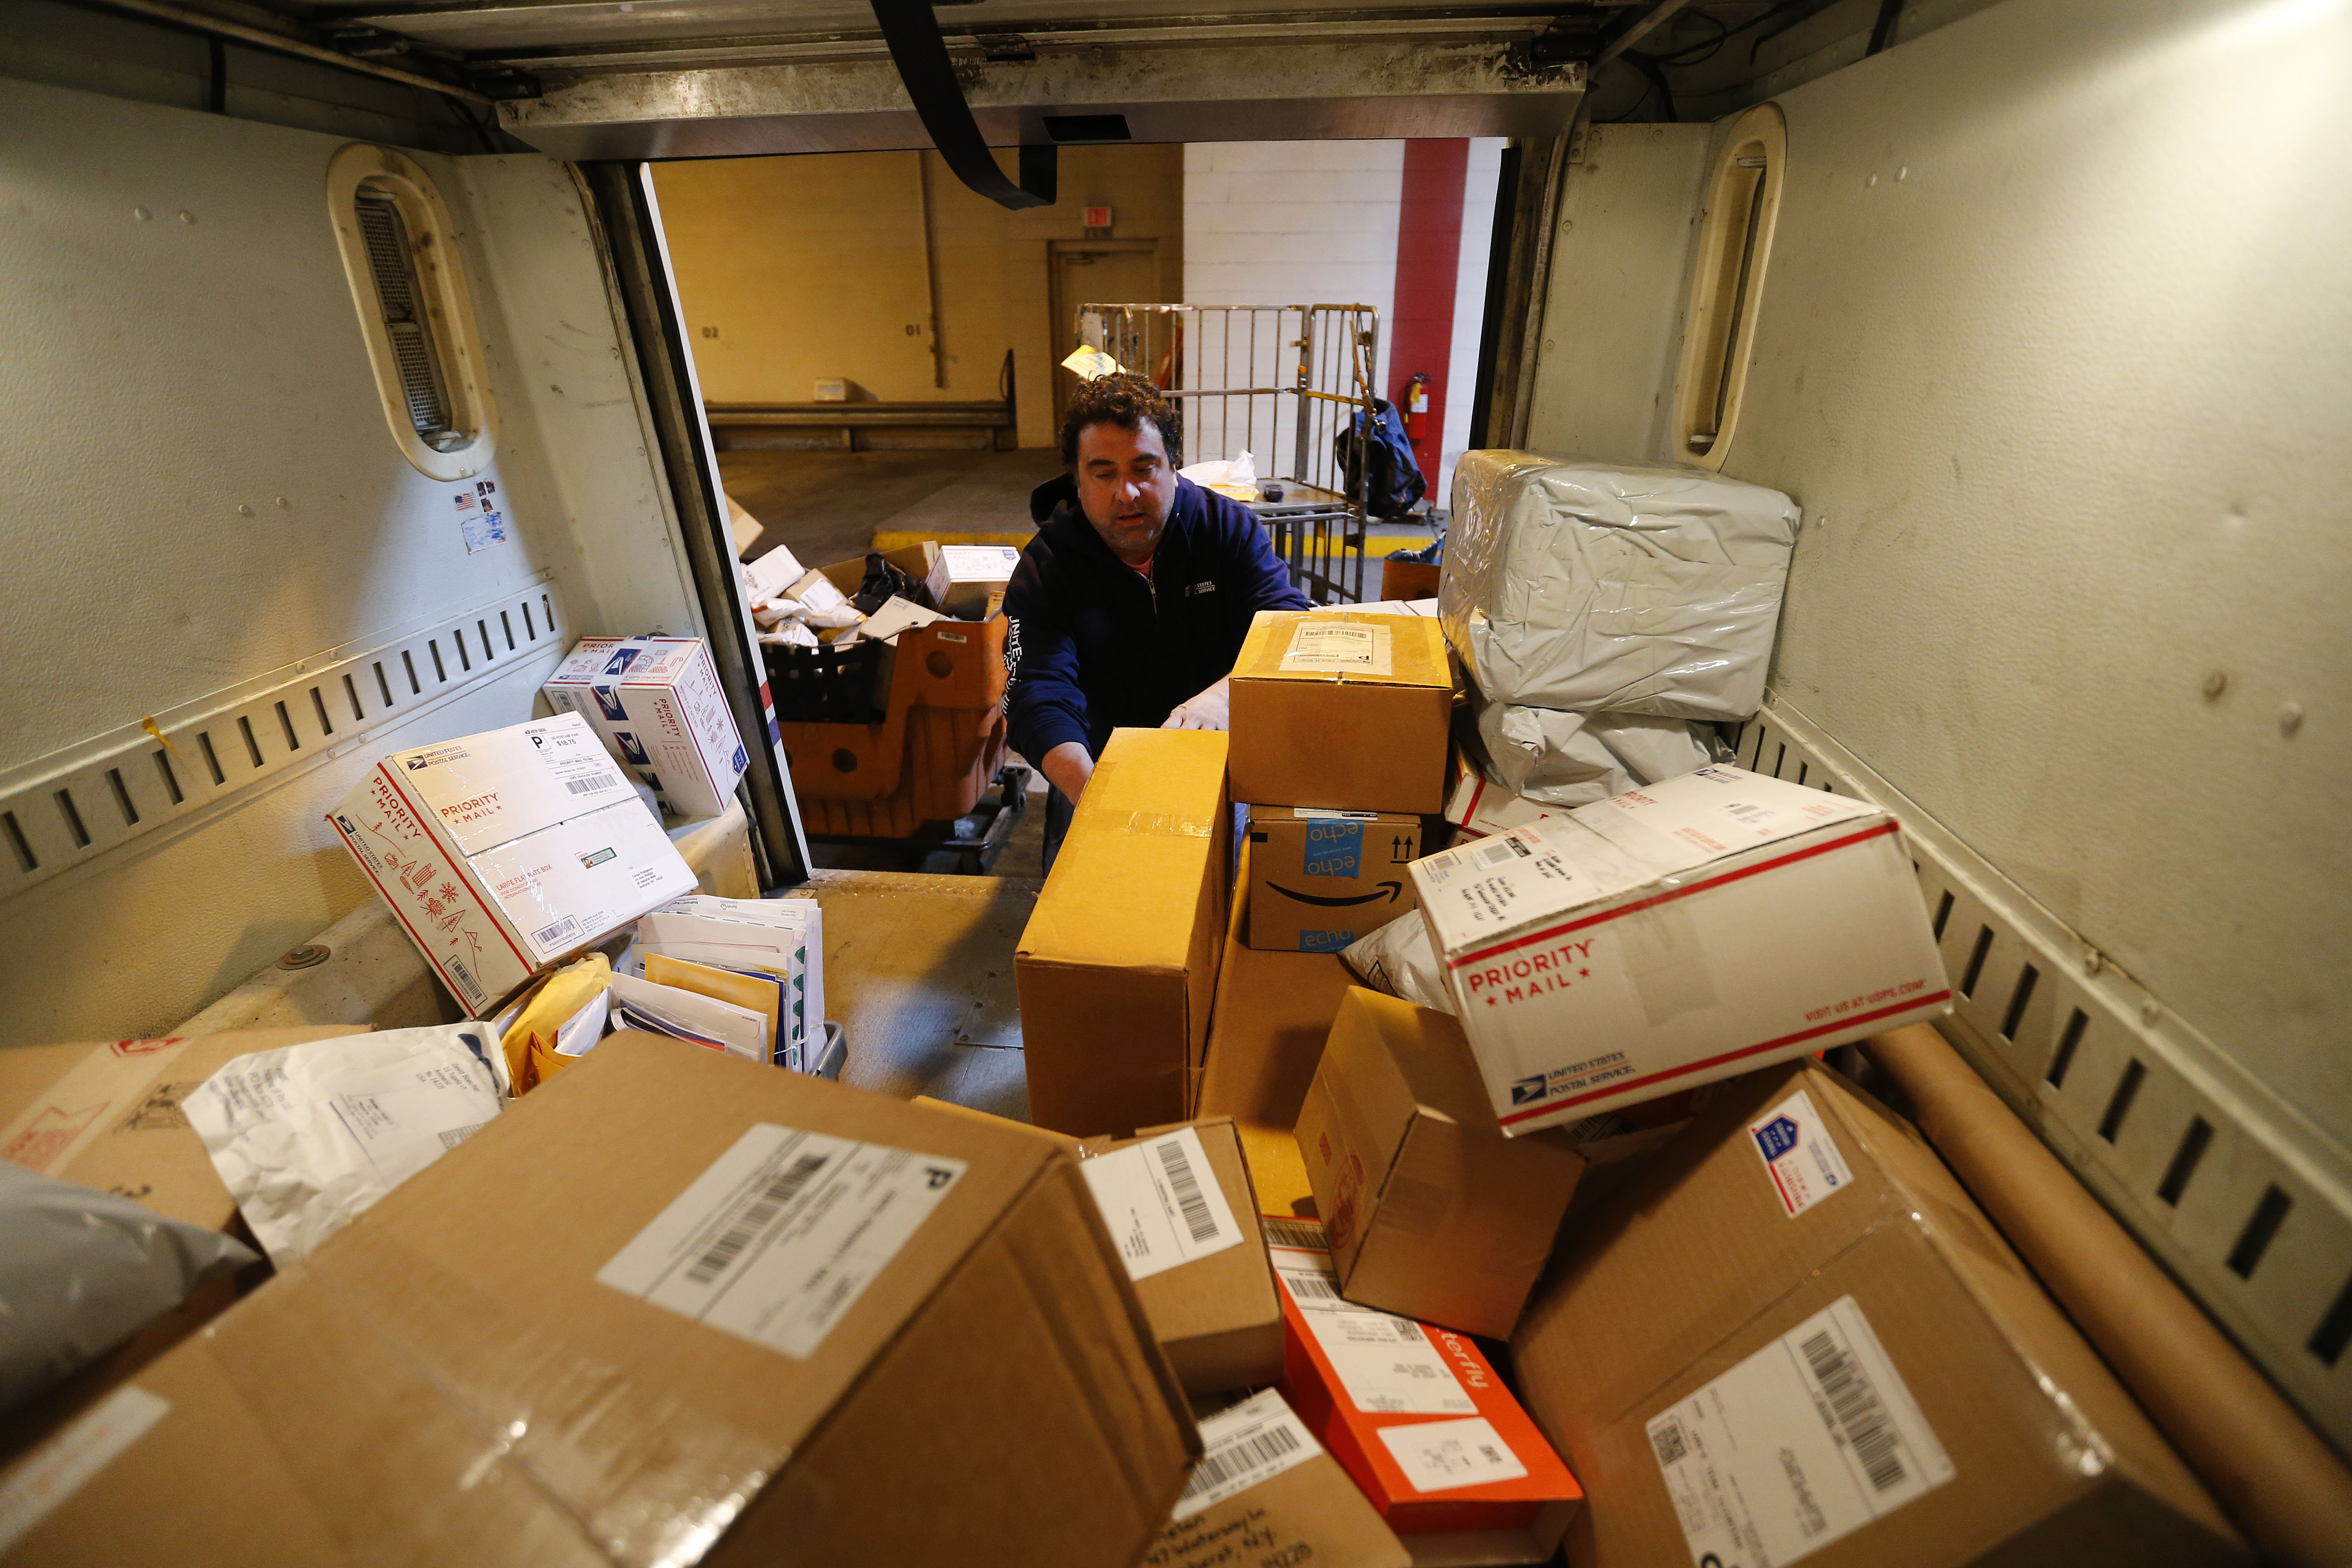 Gary Cascio loads his delivery truck with letters and packages at the post office on North Bailey in Amherst Monday, Dec. 19, 2016. (Mark Mulville/Buffalo News)